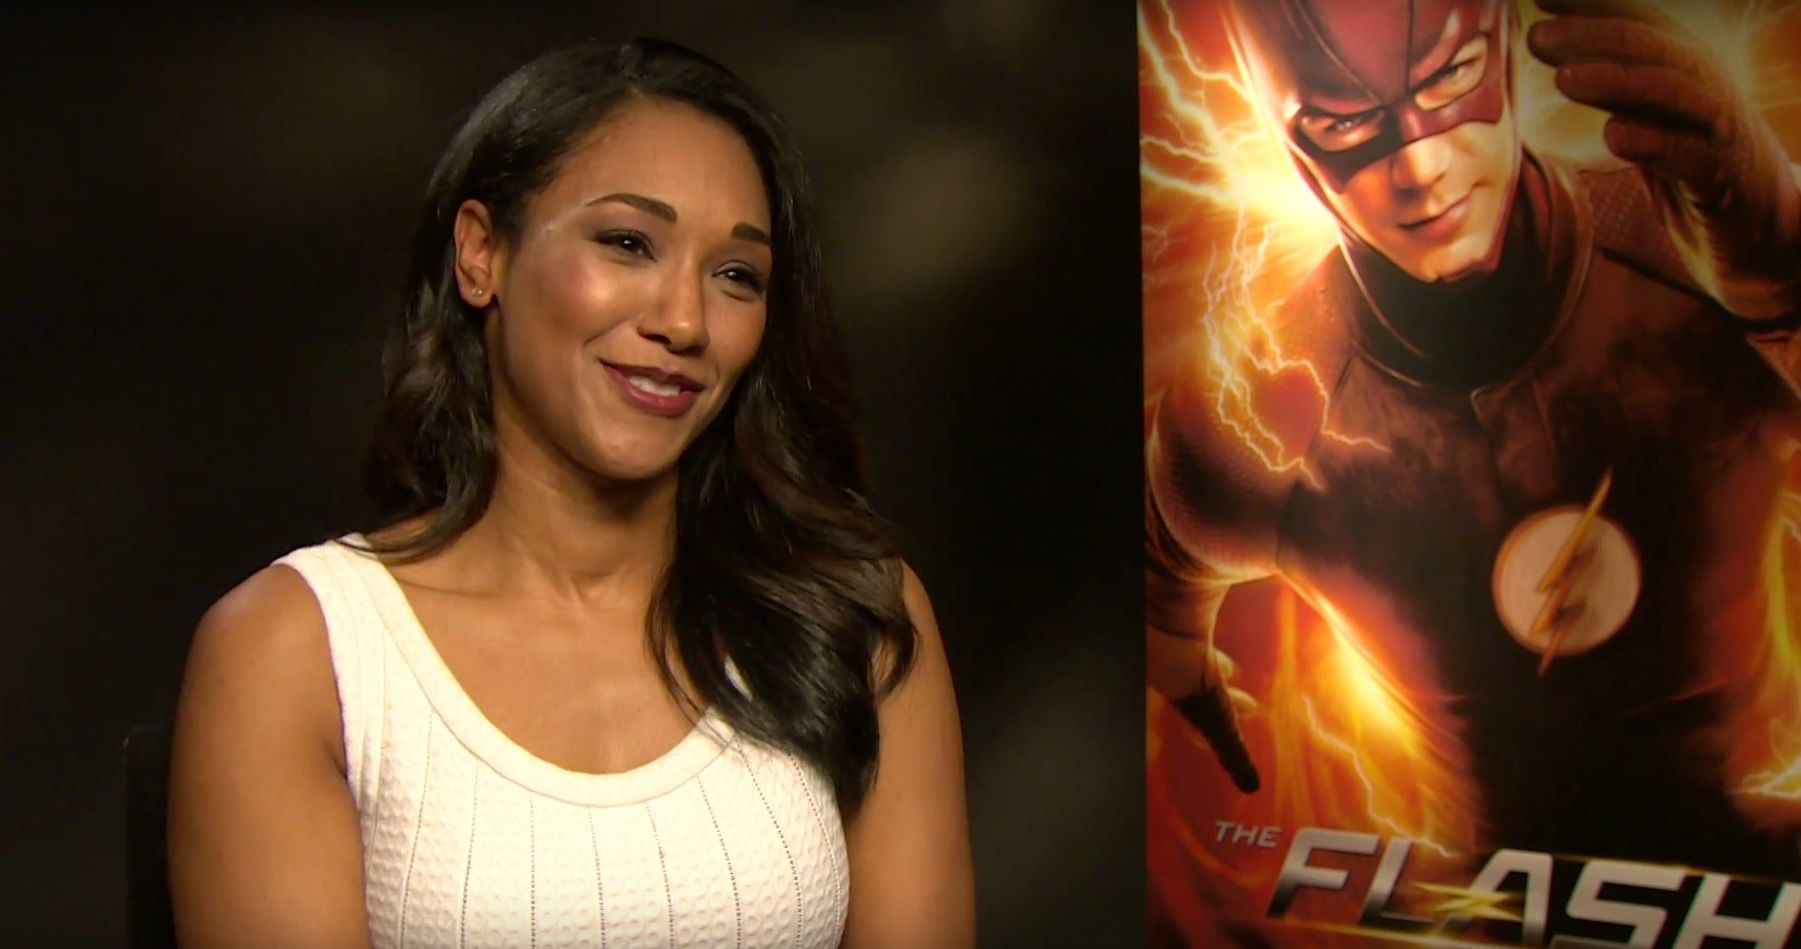 The Flash' Stars Tease What to Expect in Season 3